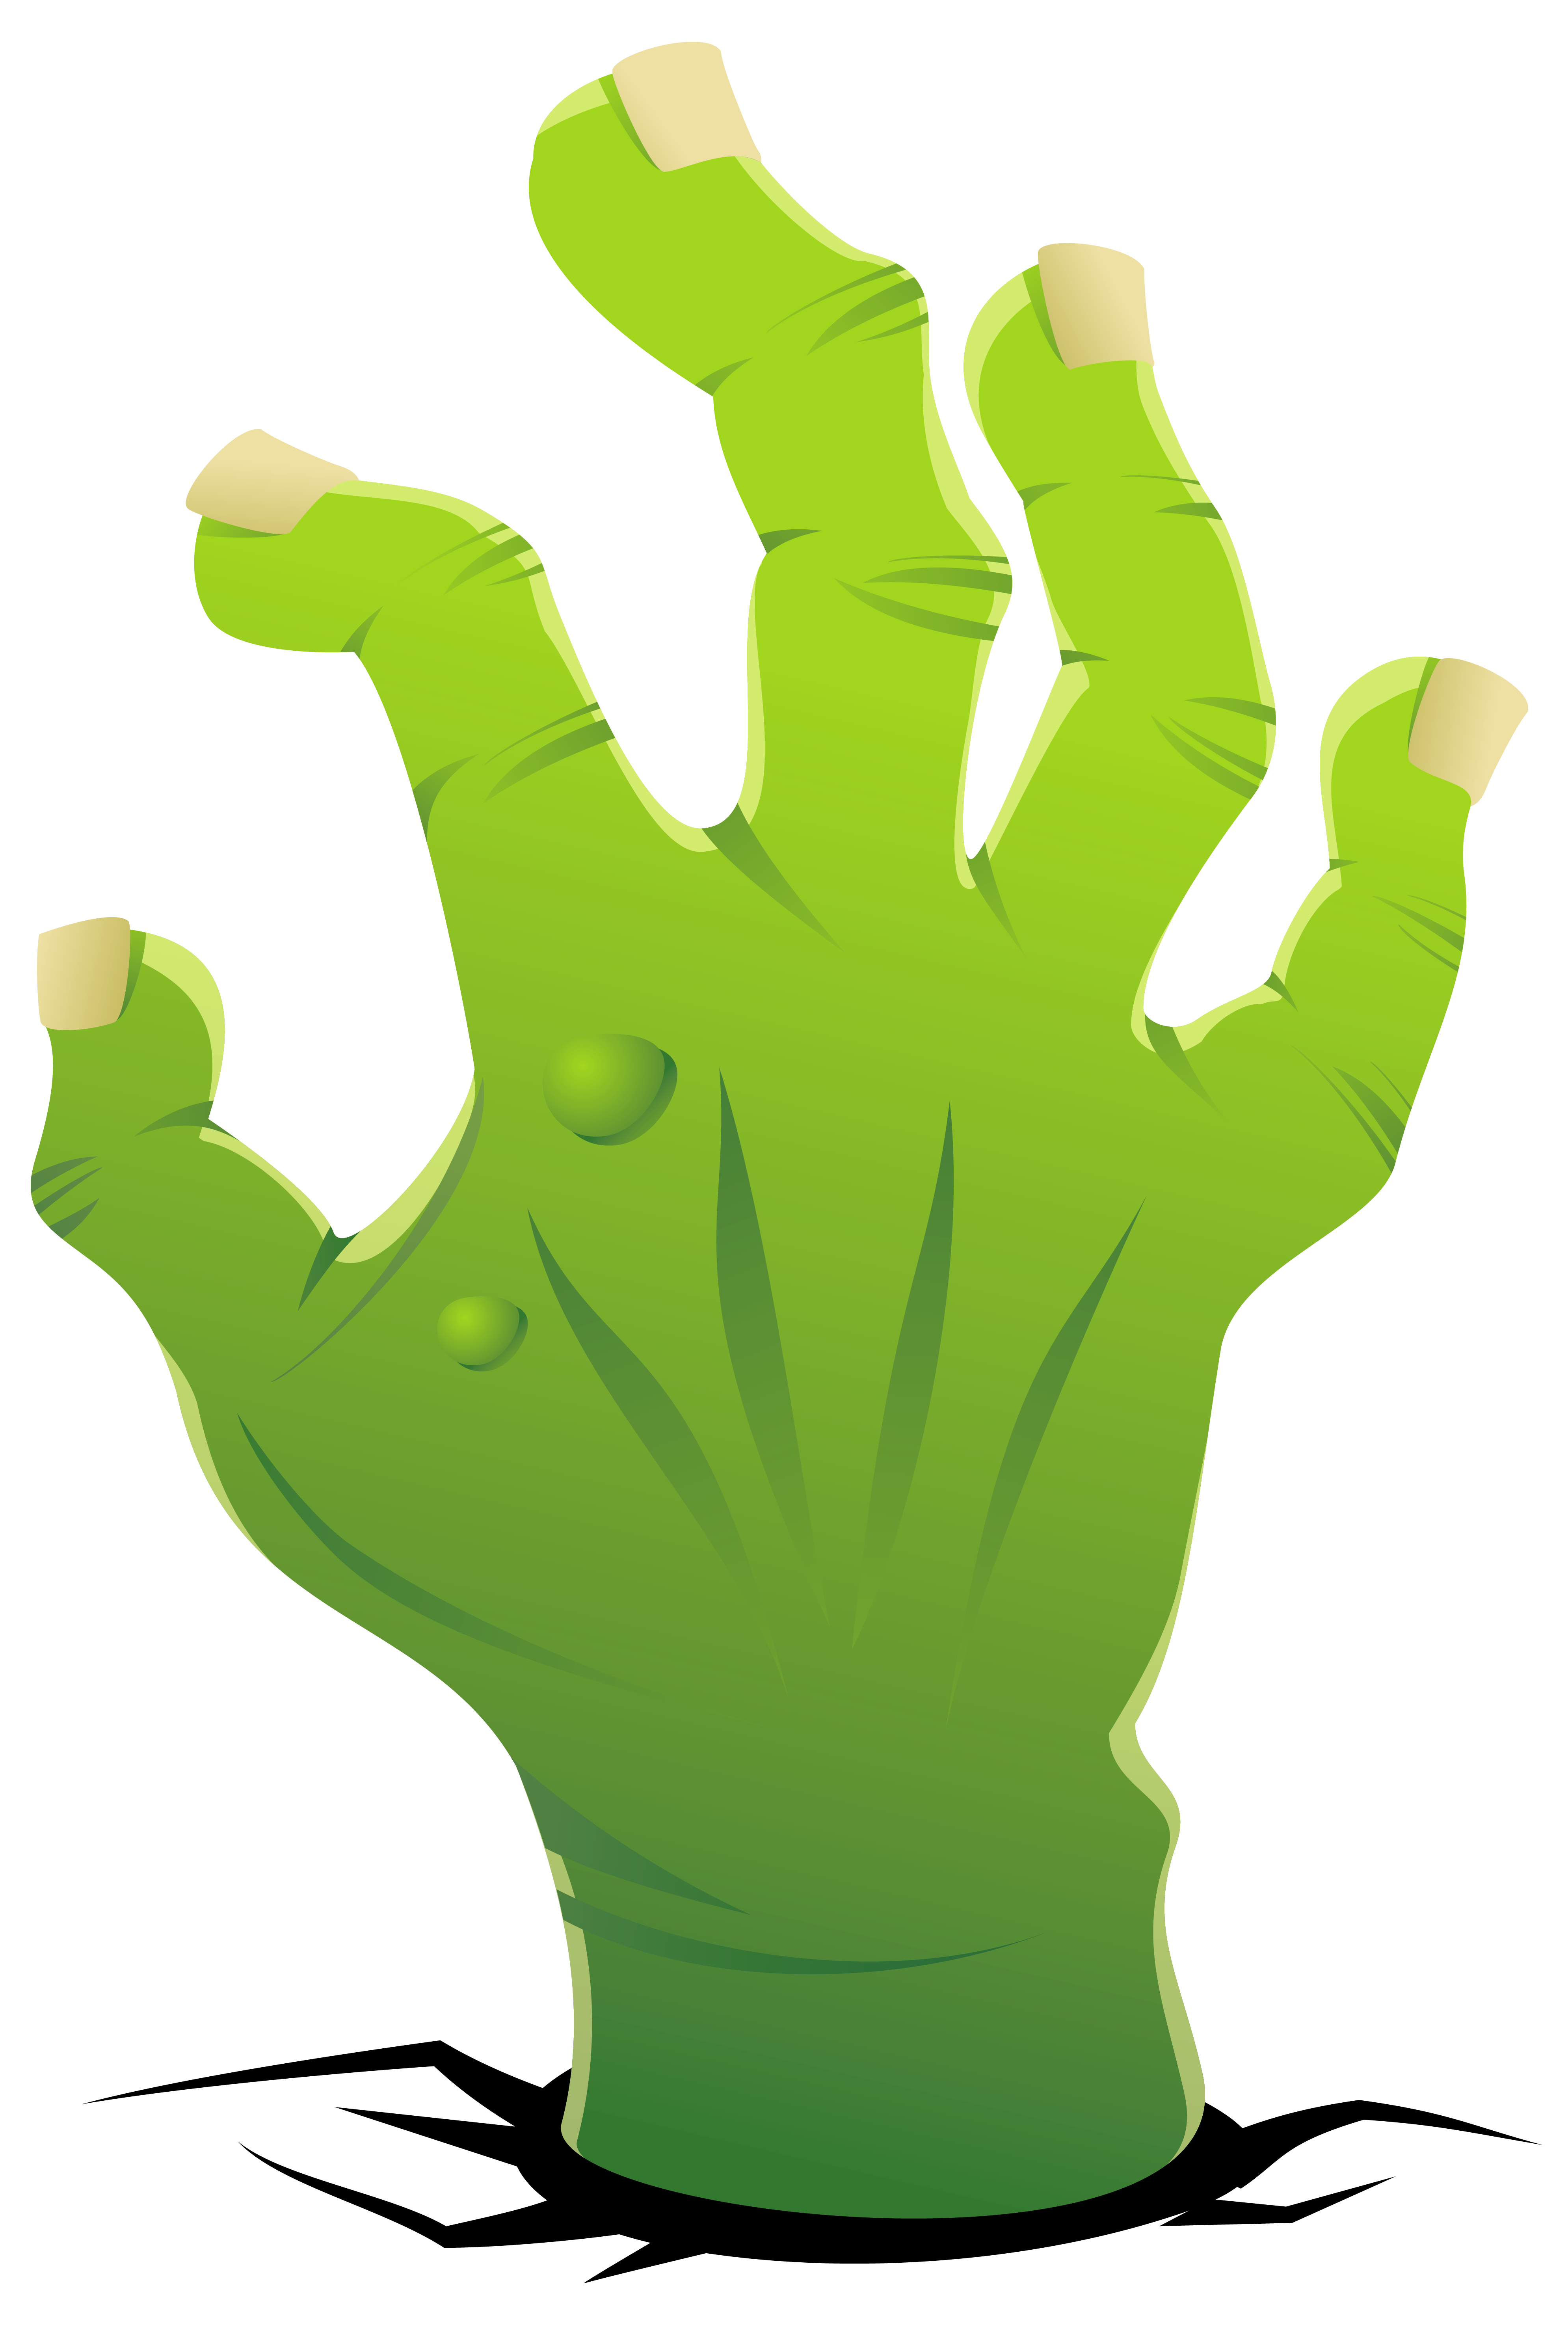 Zombie clipart finger.  collection of transparent